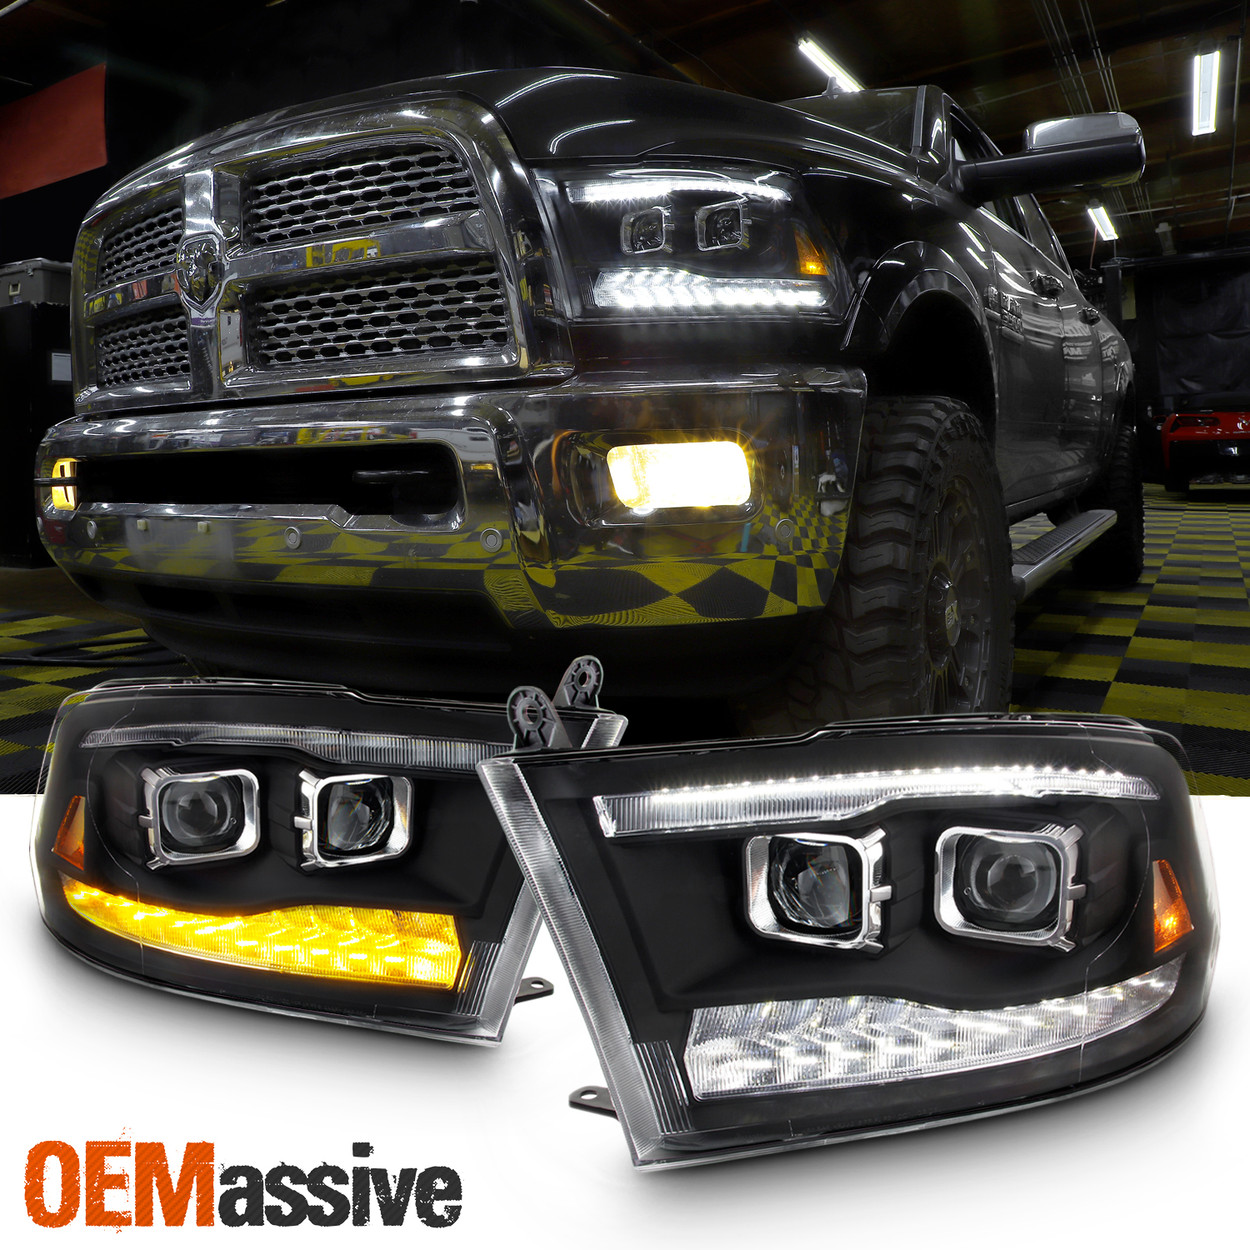 Fit Dodge Ram 09 18 1500 2500 3500 Black Led Drl Dual Projector Headlights Lamps Oemassive